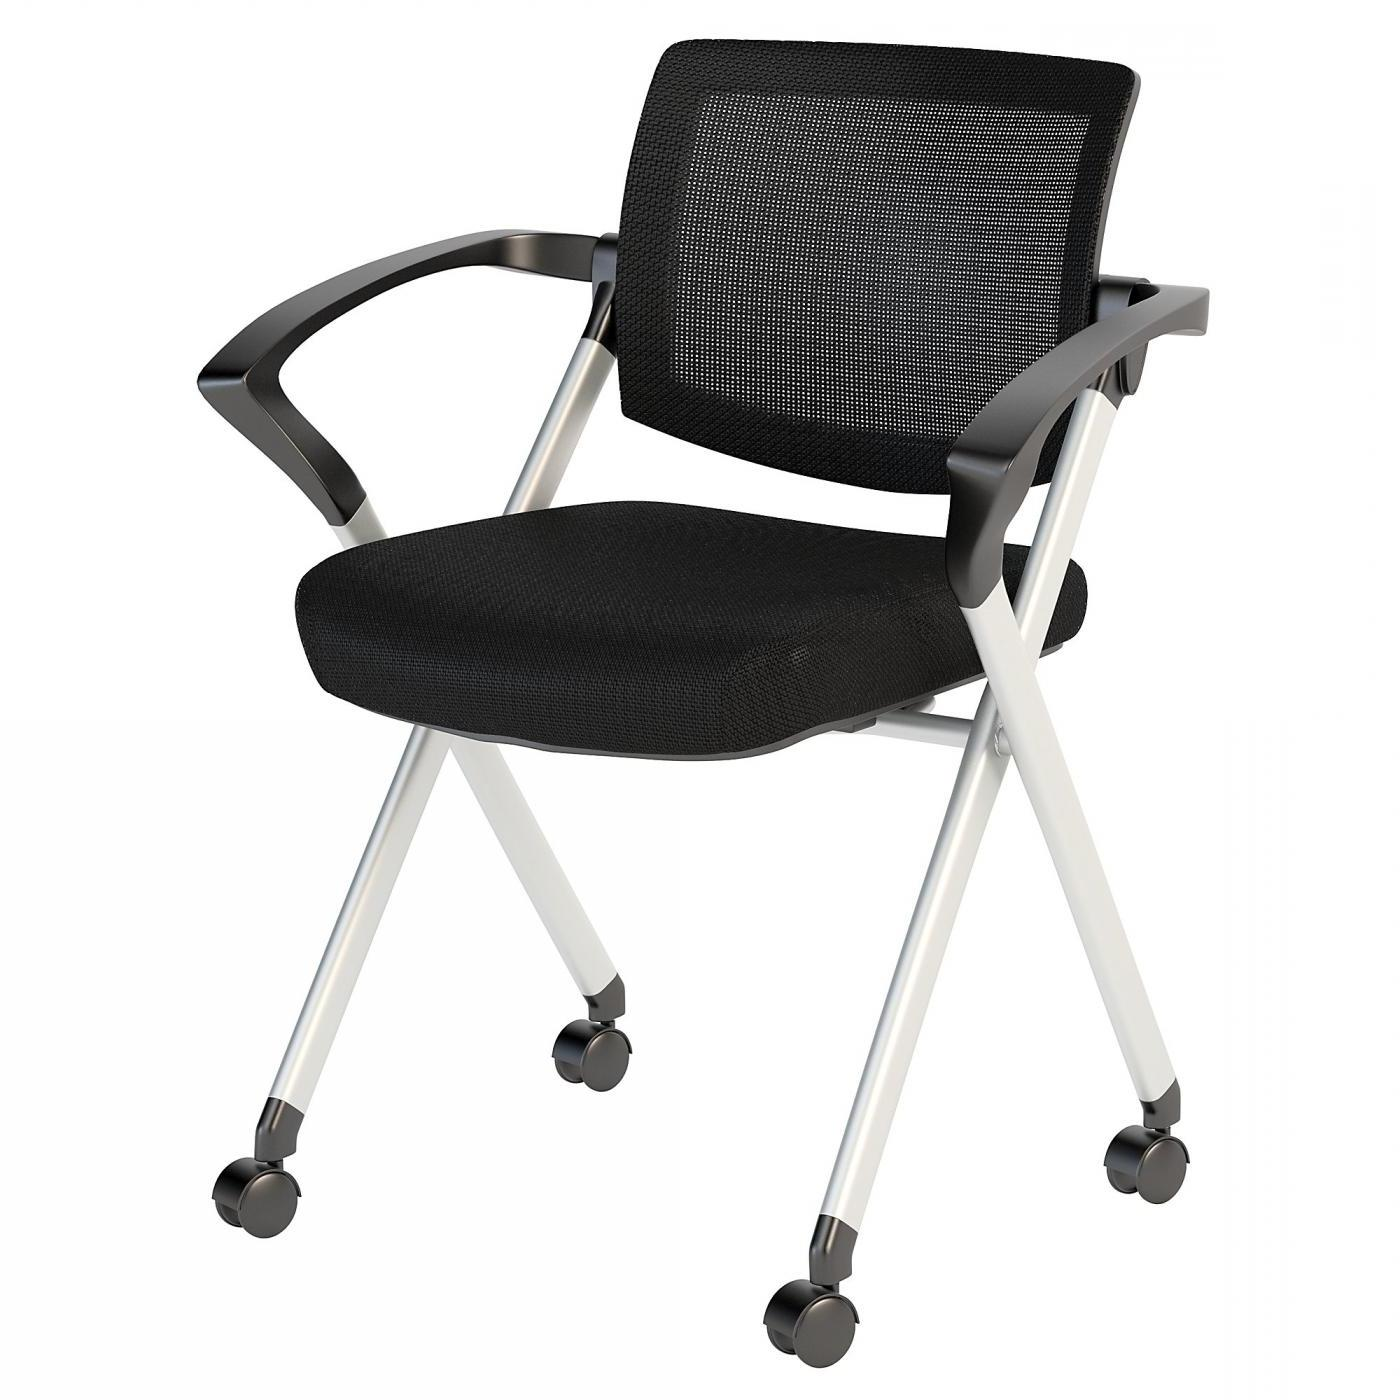 <font color=#c60><b>BUSH BUSINESS FURNITURE CORPORATE MESH BACK FOLDING OFFICE CHAIRS SET OF 2. FREE SHIPPING</font></b> </font></b>